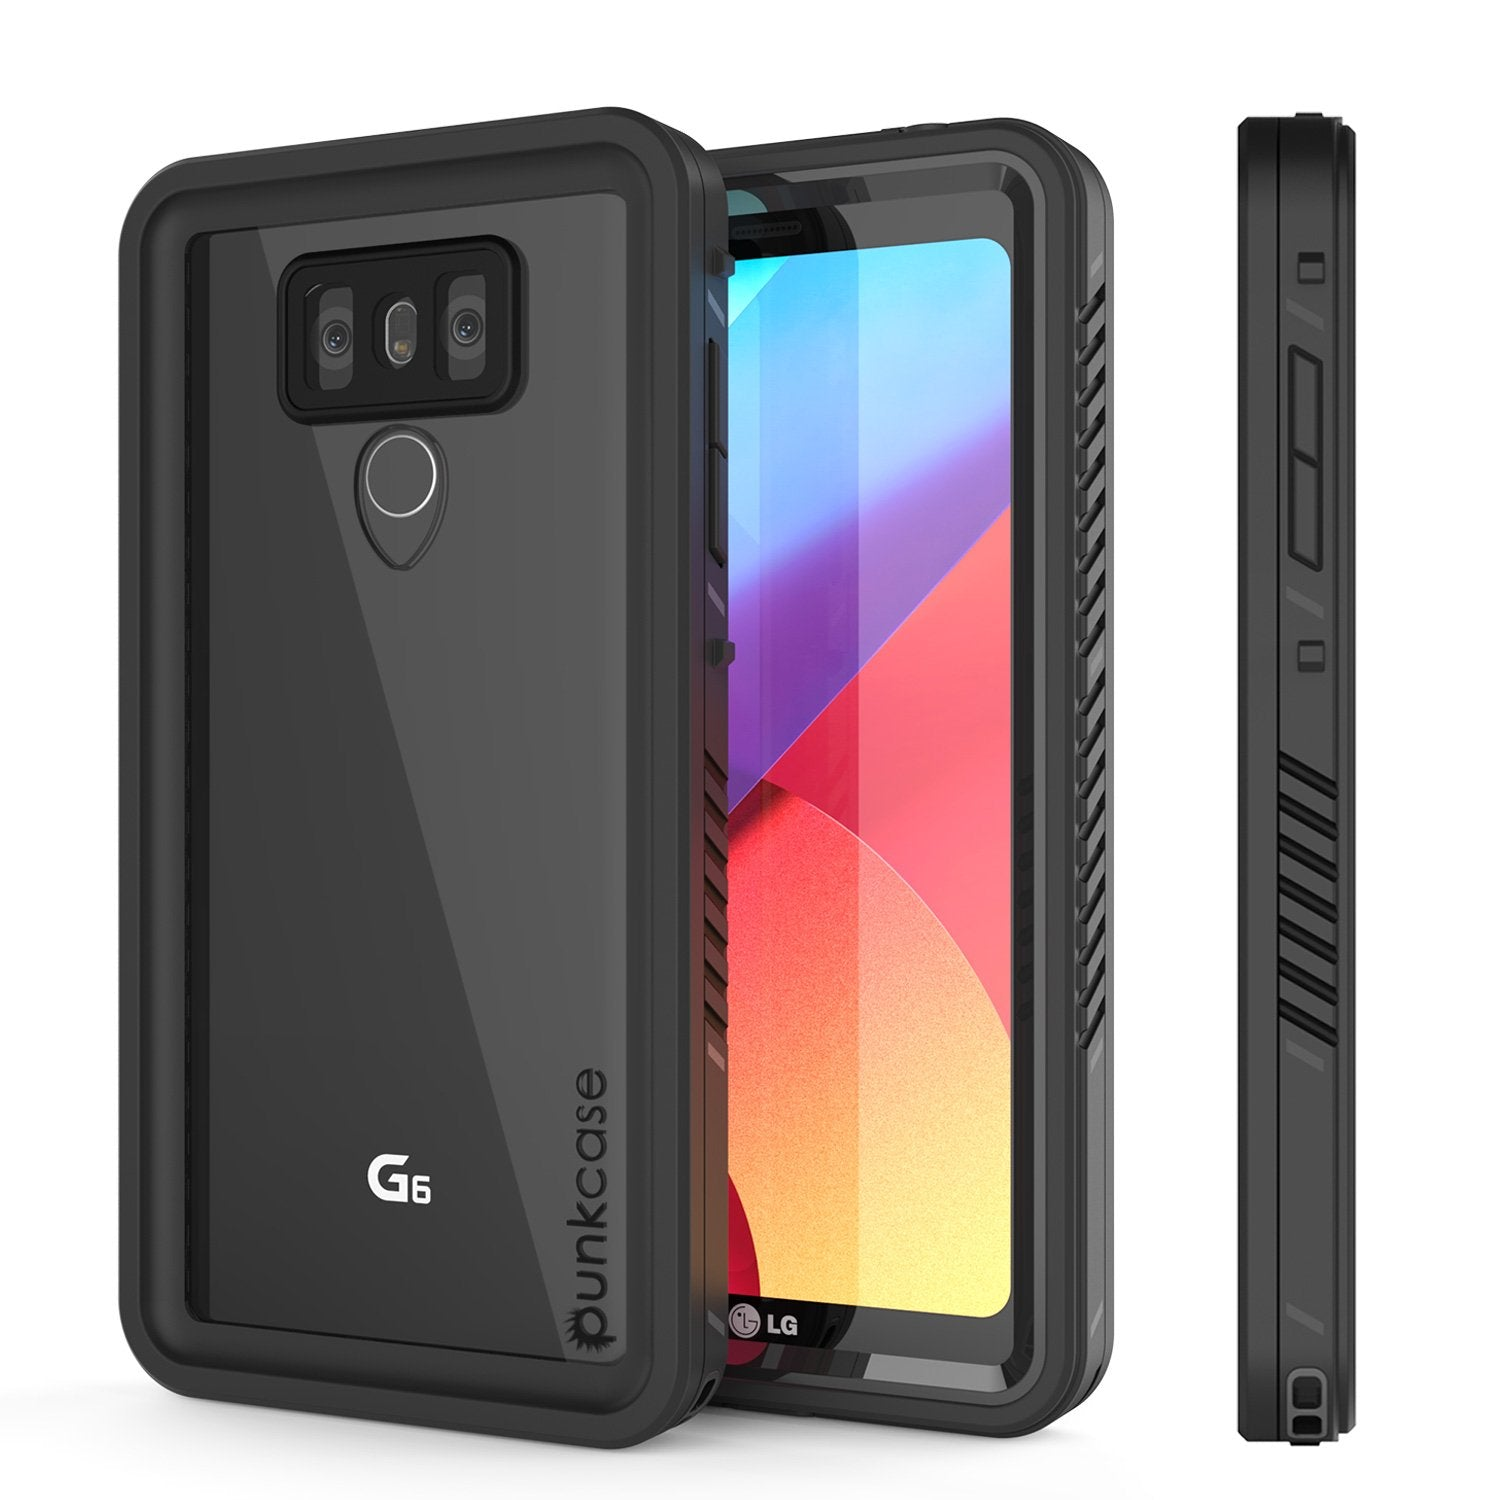 LG G6 Waterproof Case, Punkcase [Extreme Series] [Slim Fit] [IP68 Certified] [Shockproof] [Snowproof] [Dirproof] Armor Cover W/ Built In Screen Protector for LG G6 [BLACK]